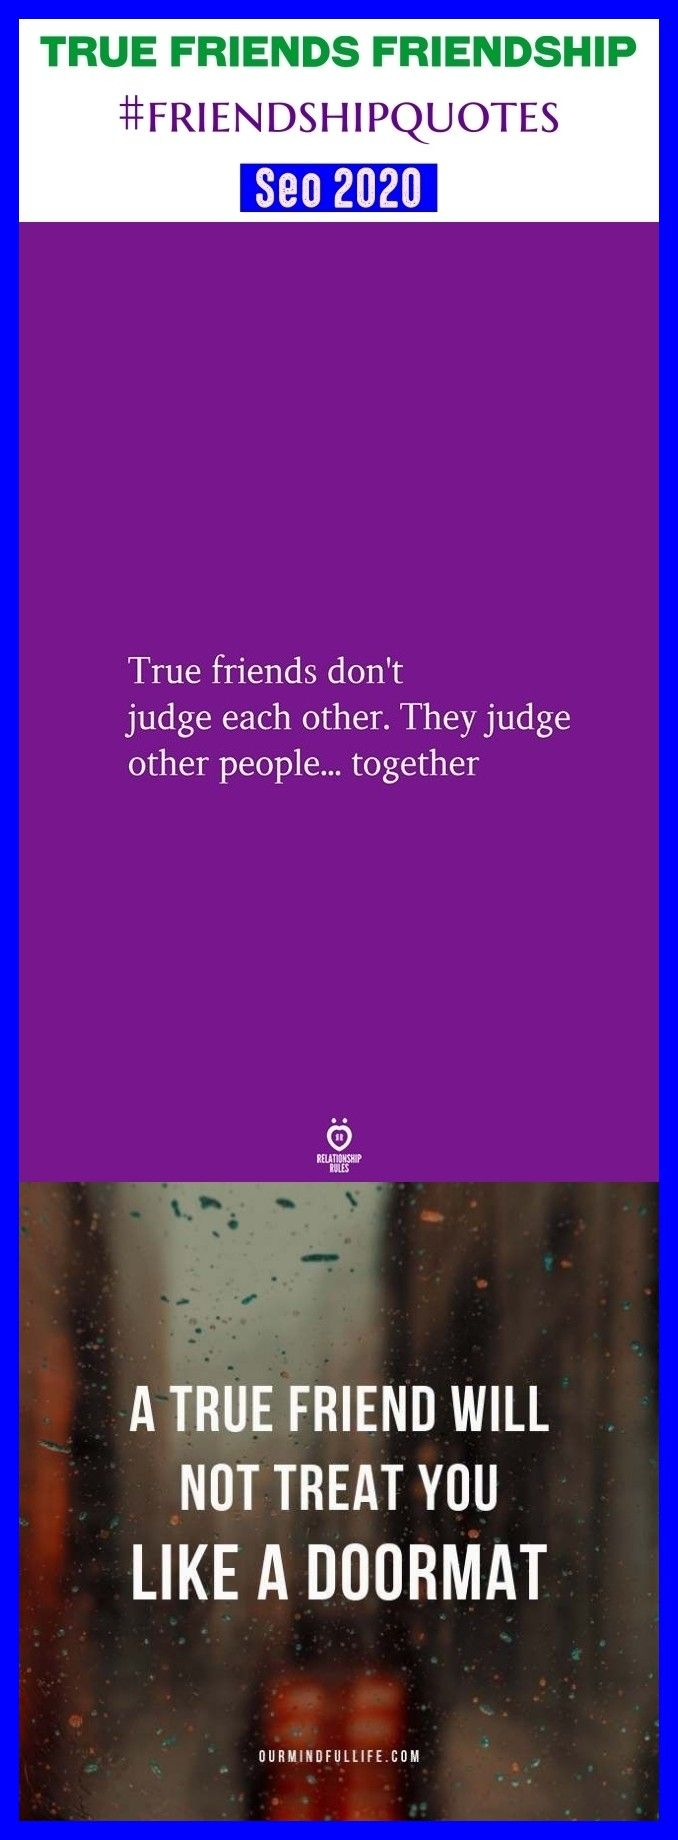 True Friends Friendship Friendshipquotes Keywords Niches Seo Quotes True Friends Quotes In 2020 True Friends Quotes Real Friendship Quotes Friendship Day Quotes